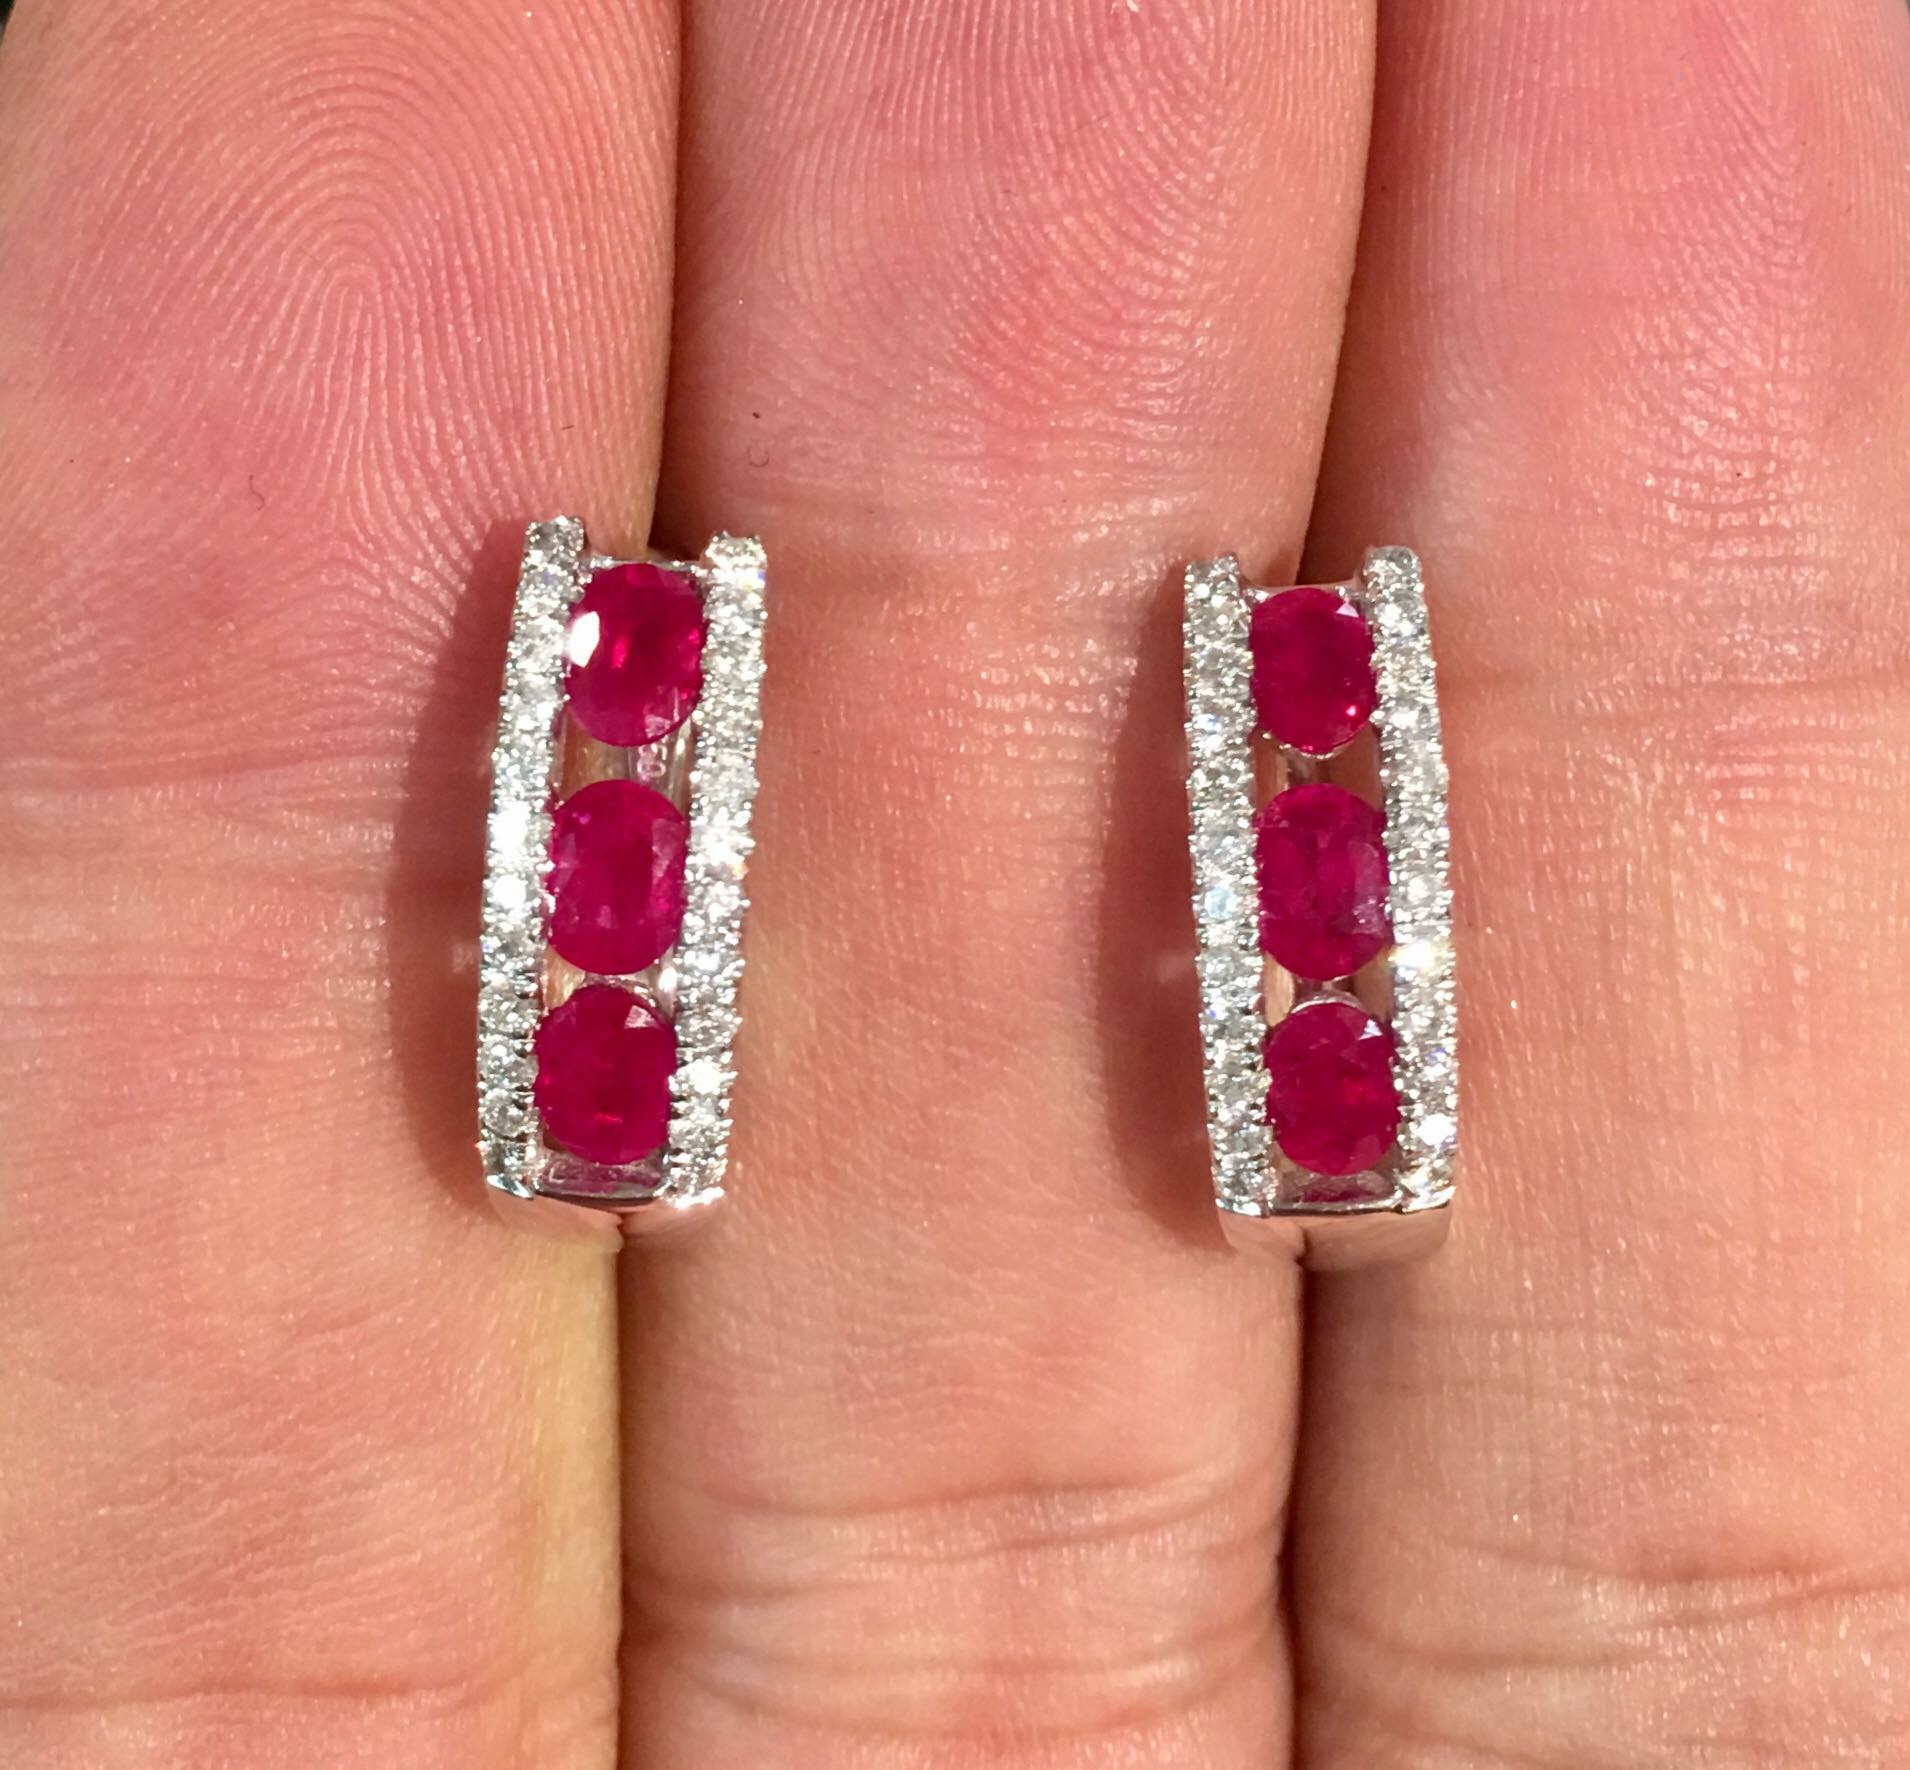 These 18kwg leverback ruby earrings are accented by 1.20 ctw of diamonds - a clean, classic look.